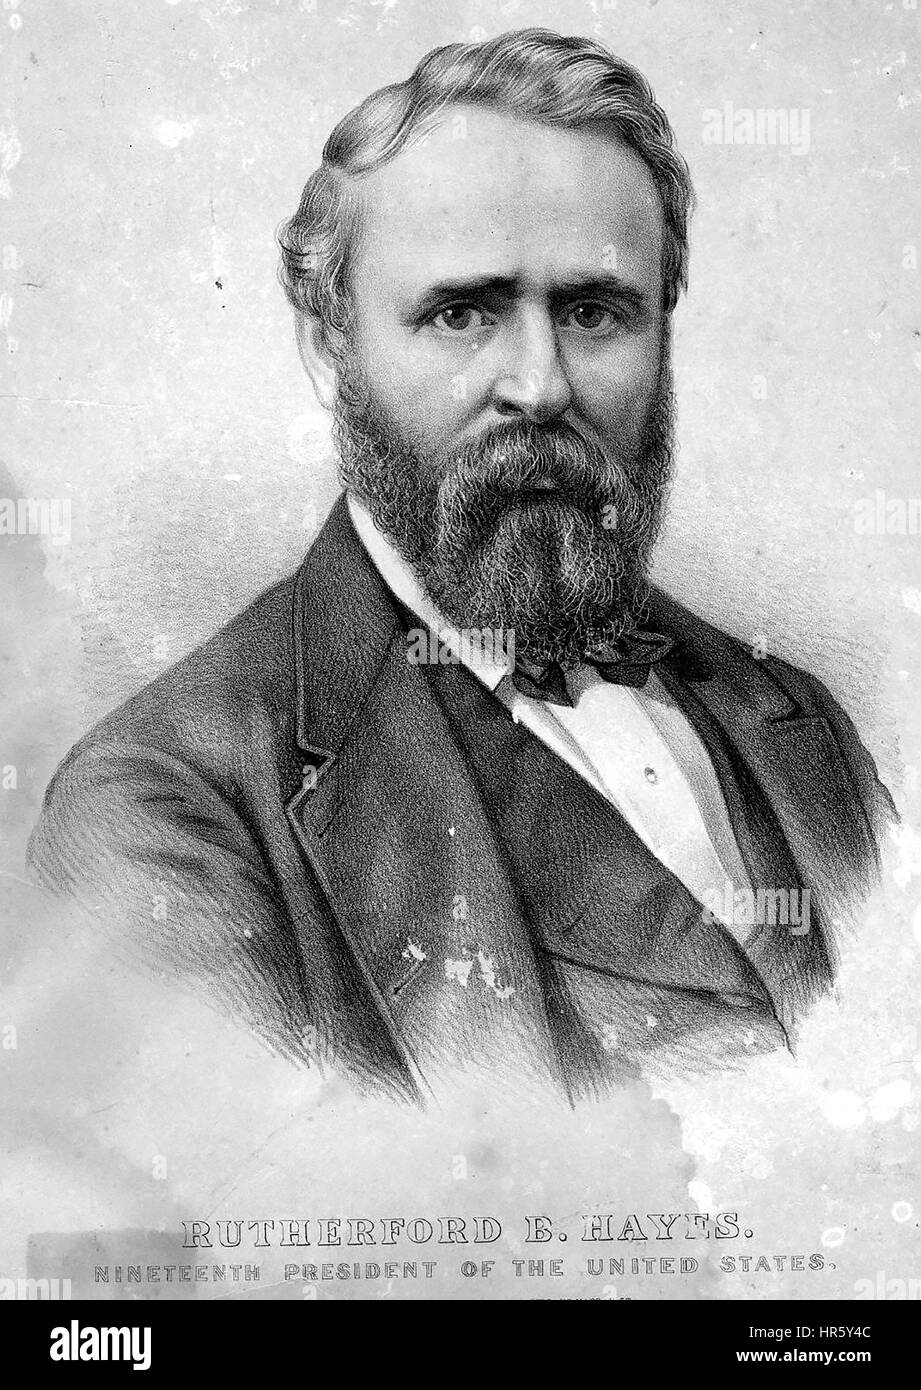 Rutherford b hayes stock photos rutherford b hayes stock images